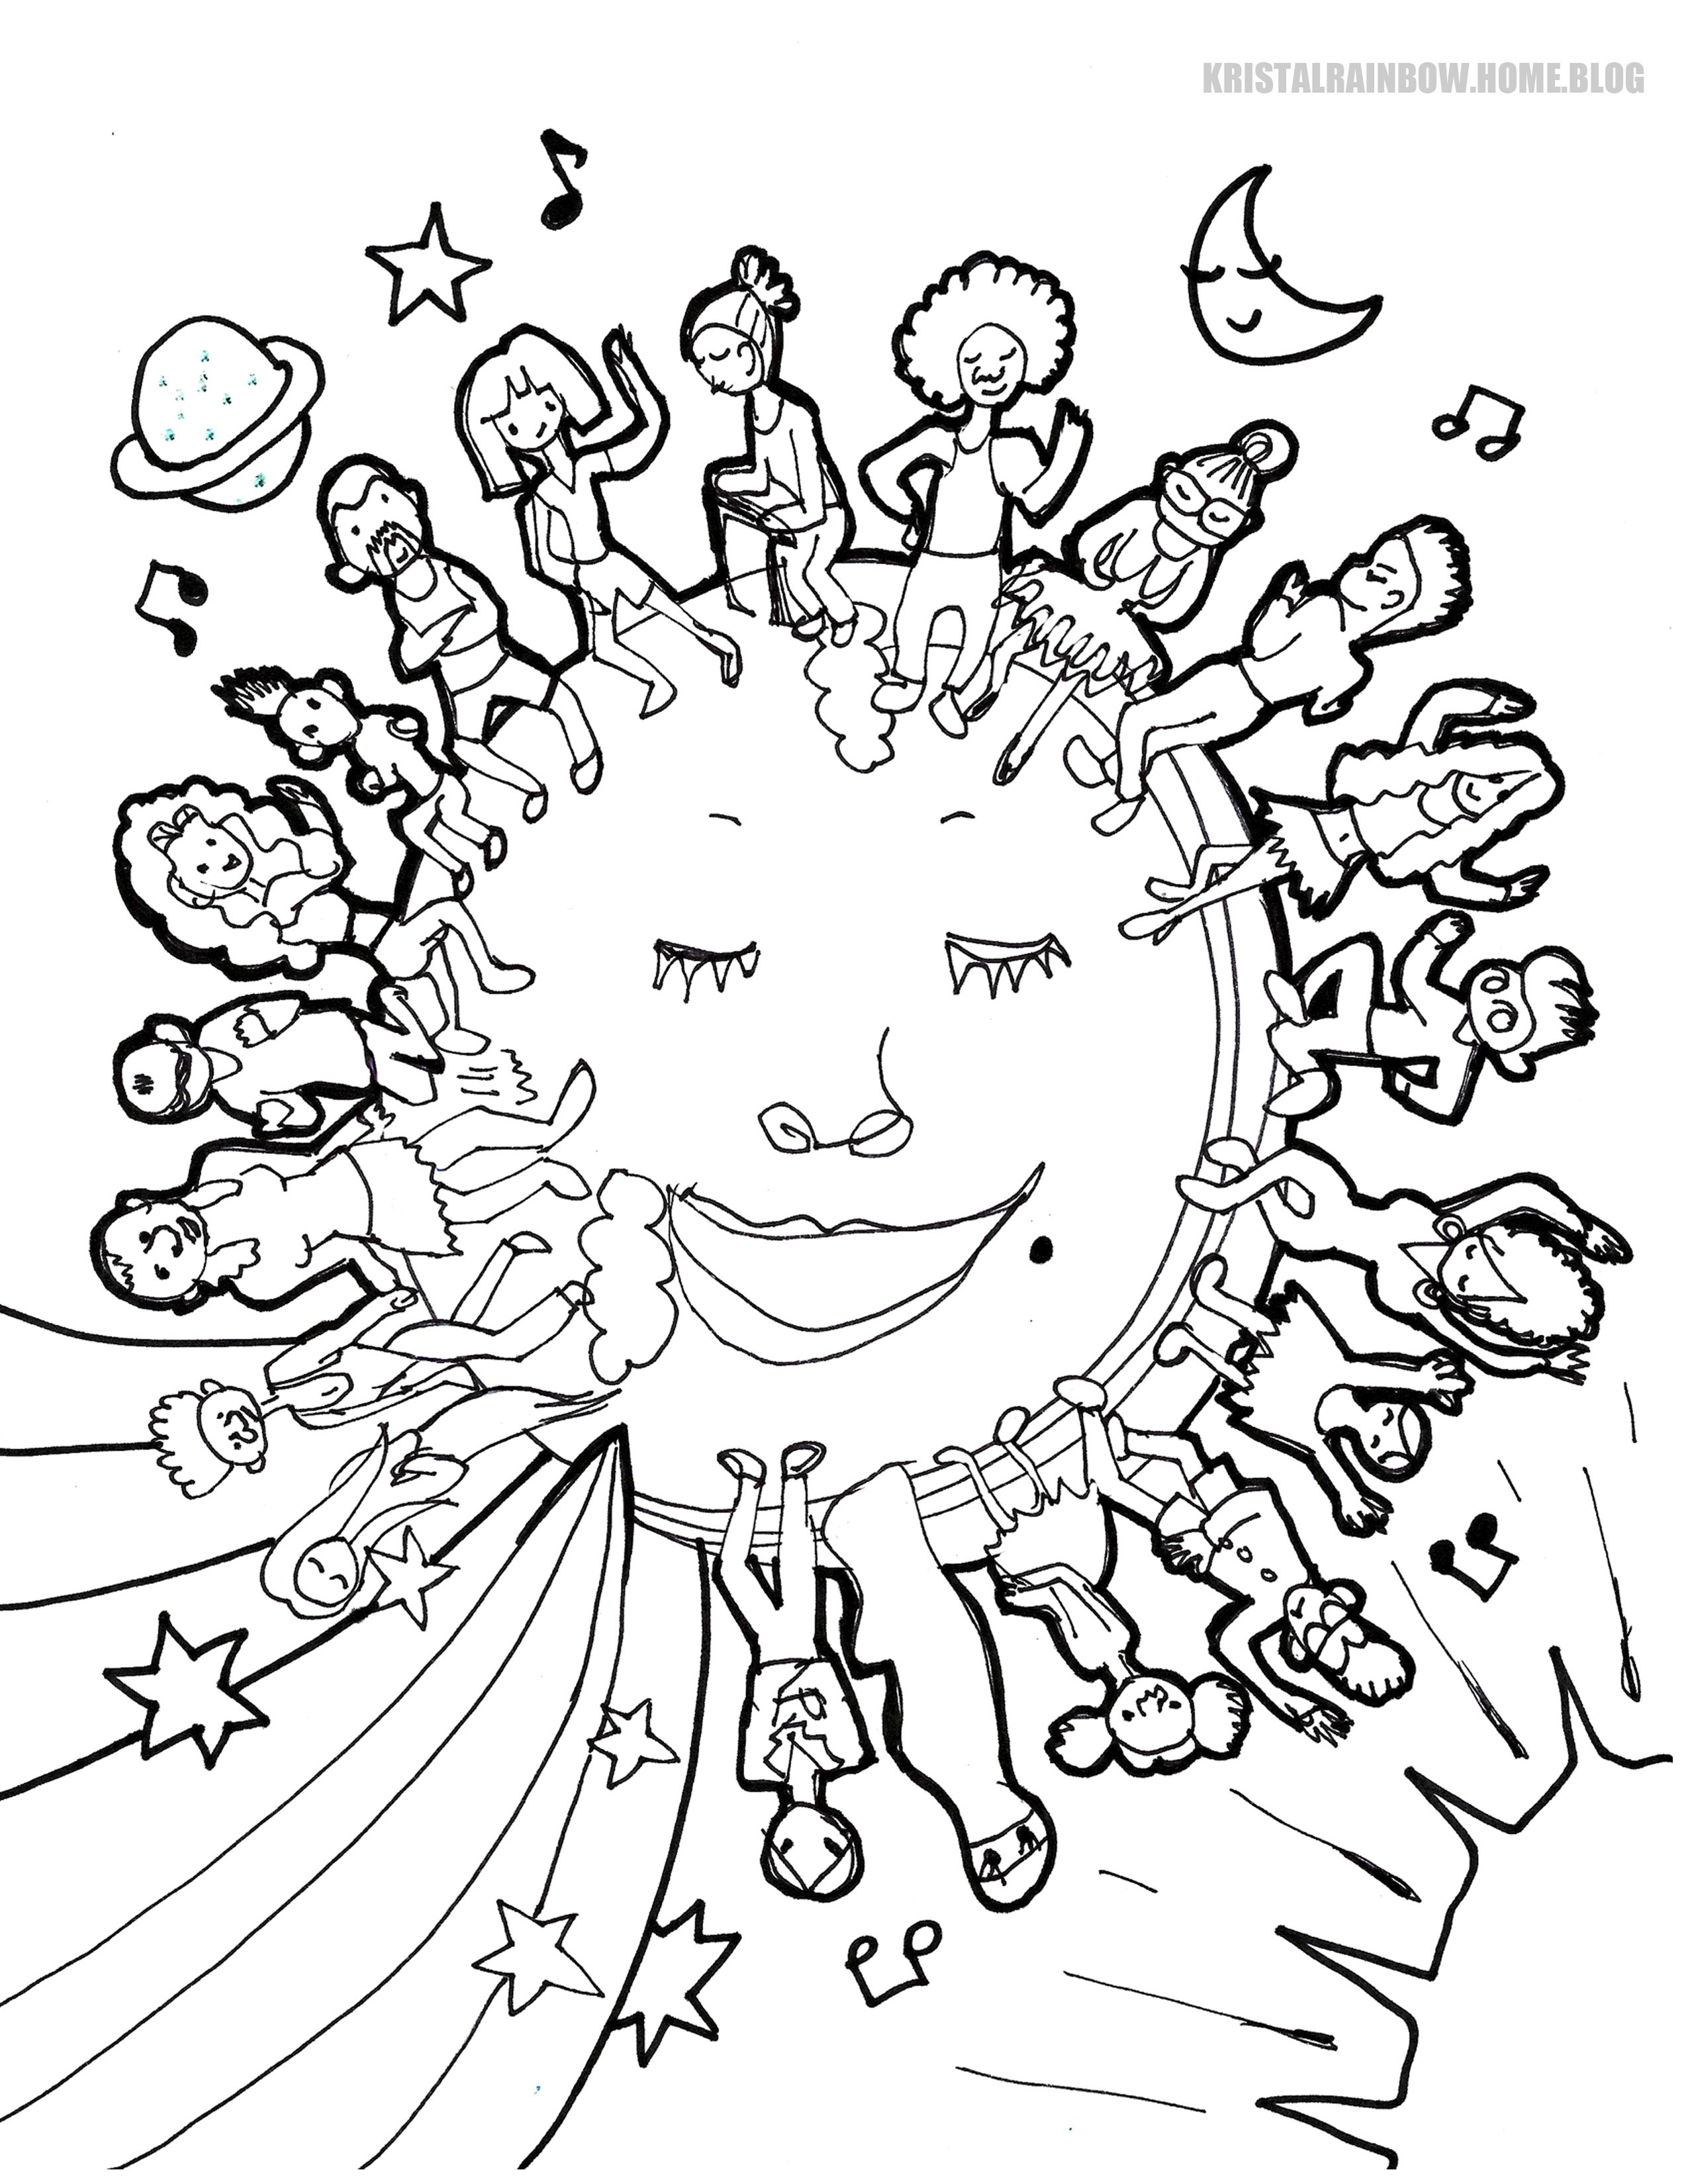 Free Coloring Page For Kids The Earth Is Color Blind In 2020 Coloring Pages Coloring Pages For Kids Fall Coloring Pages